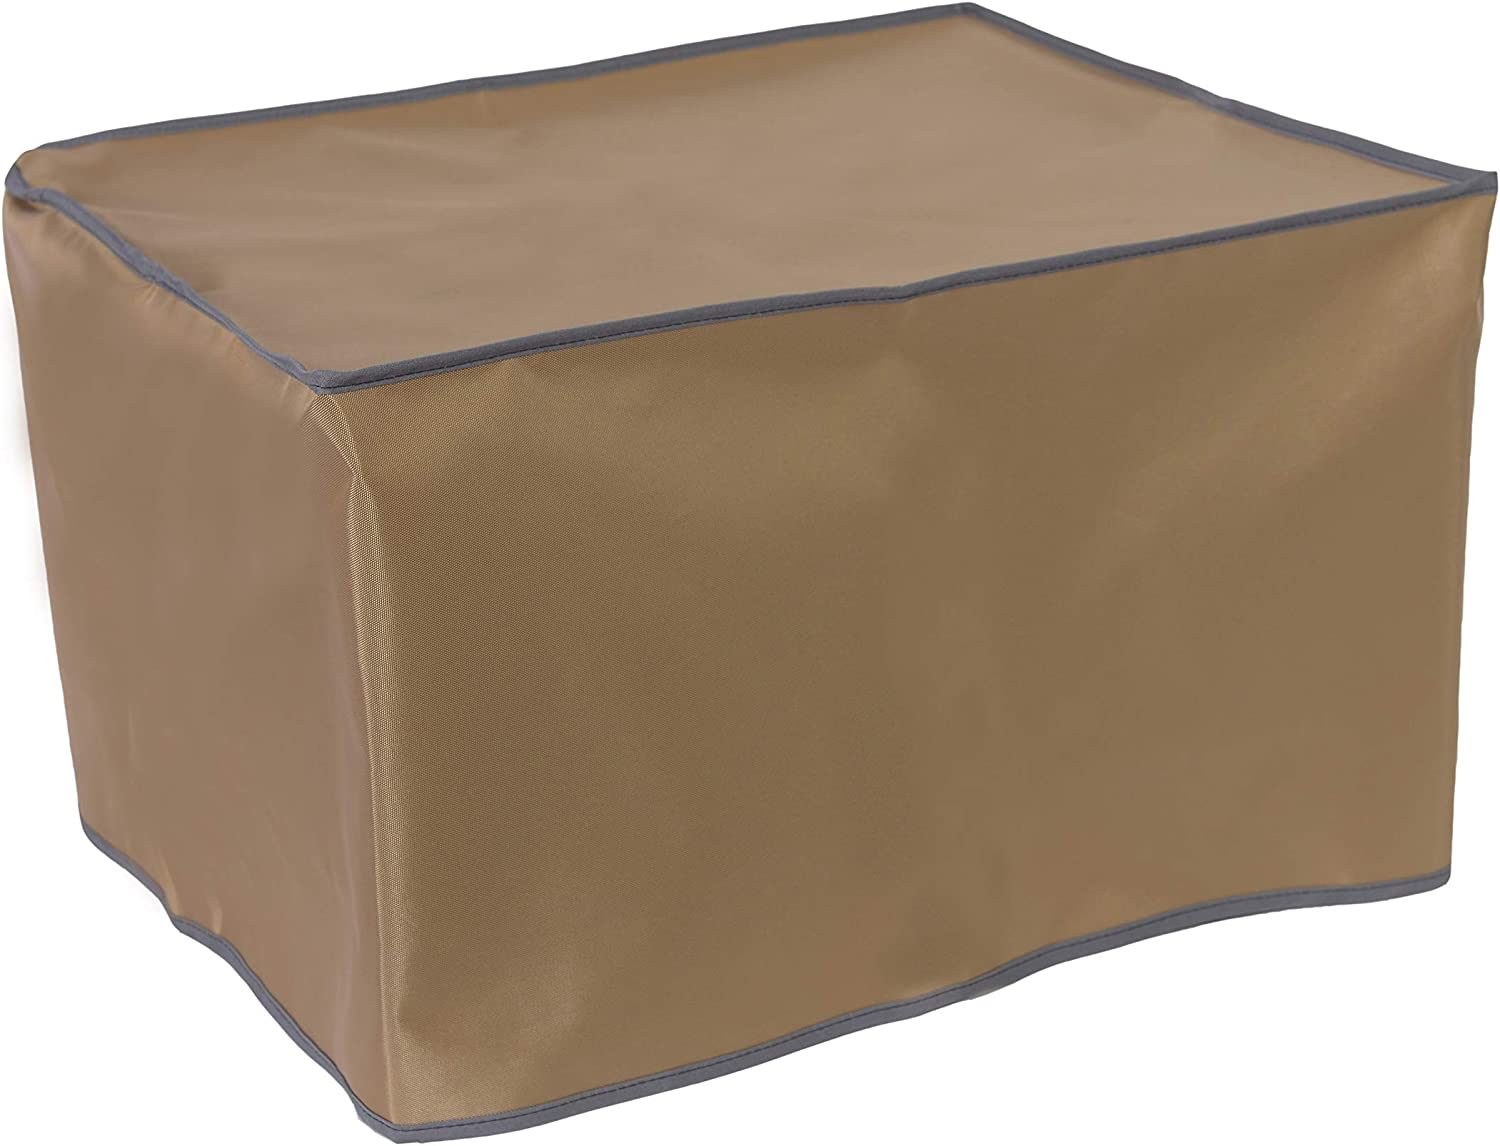 The Perfect Dust Cover, Tan Nylon Cover Compatible with Epson EcoTank-Pro ET-5150 All-in-One Printer, Anti Static and Waterproof Dimensions 14.8''W x 13.7''D x 13.6''H by The Perfect Dust Cover